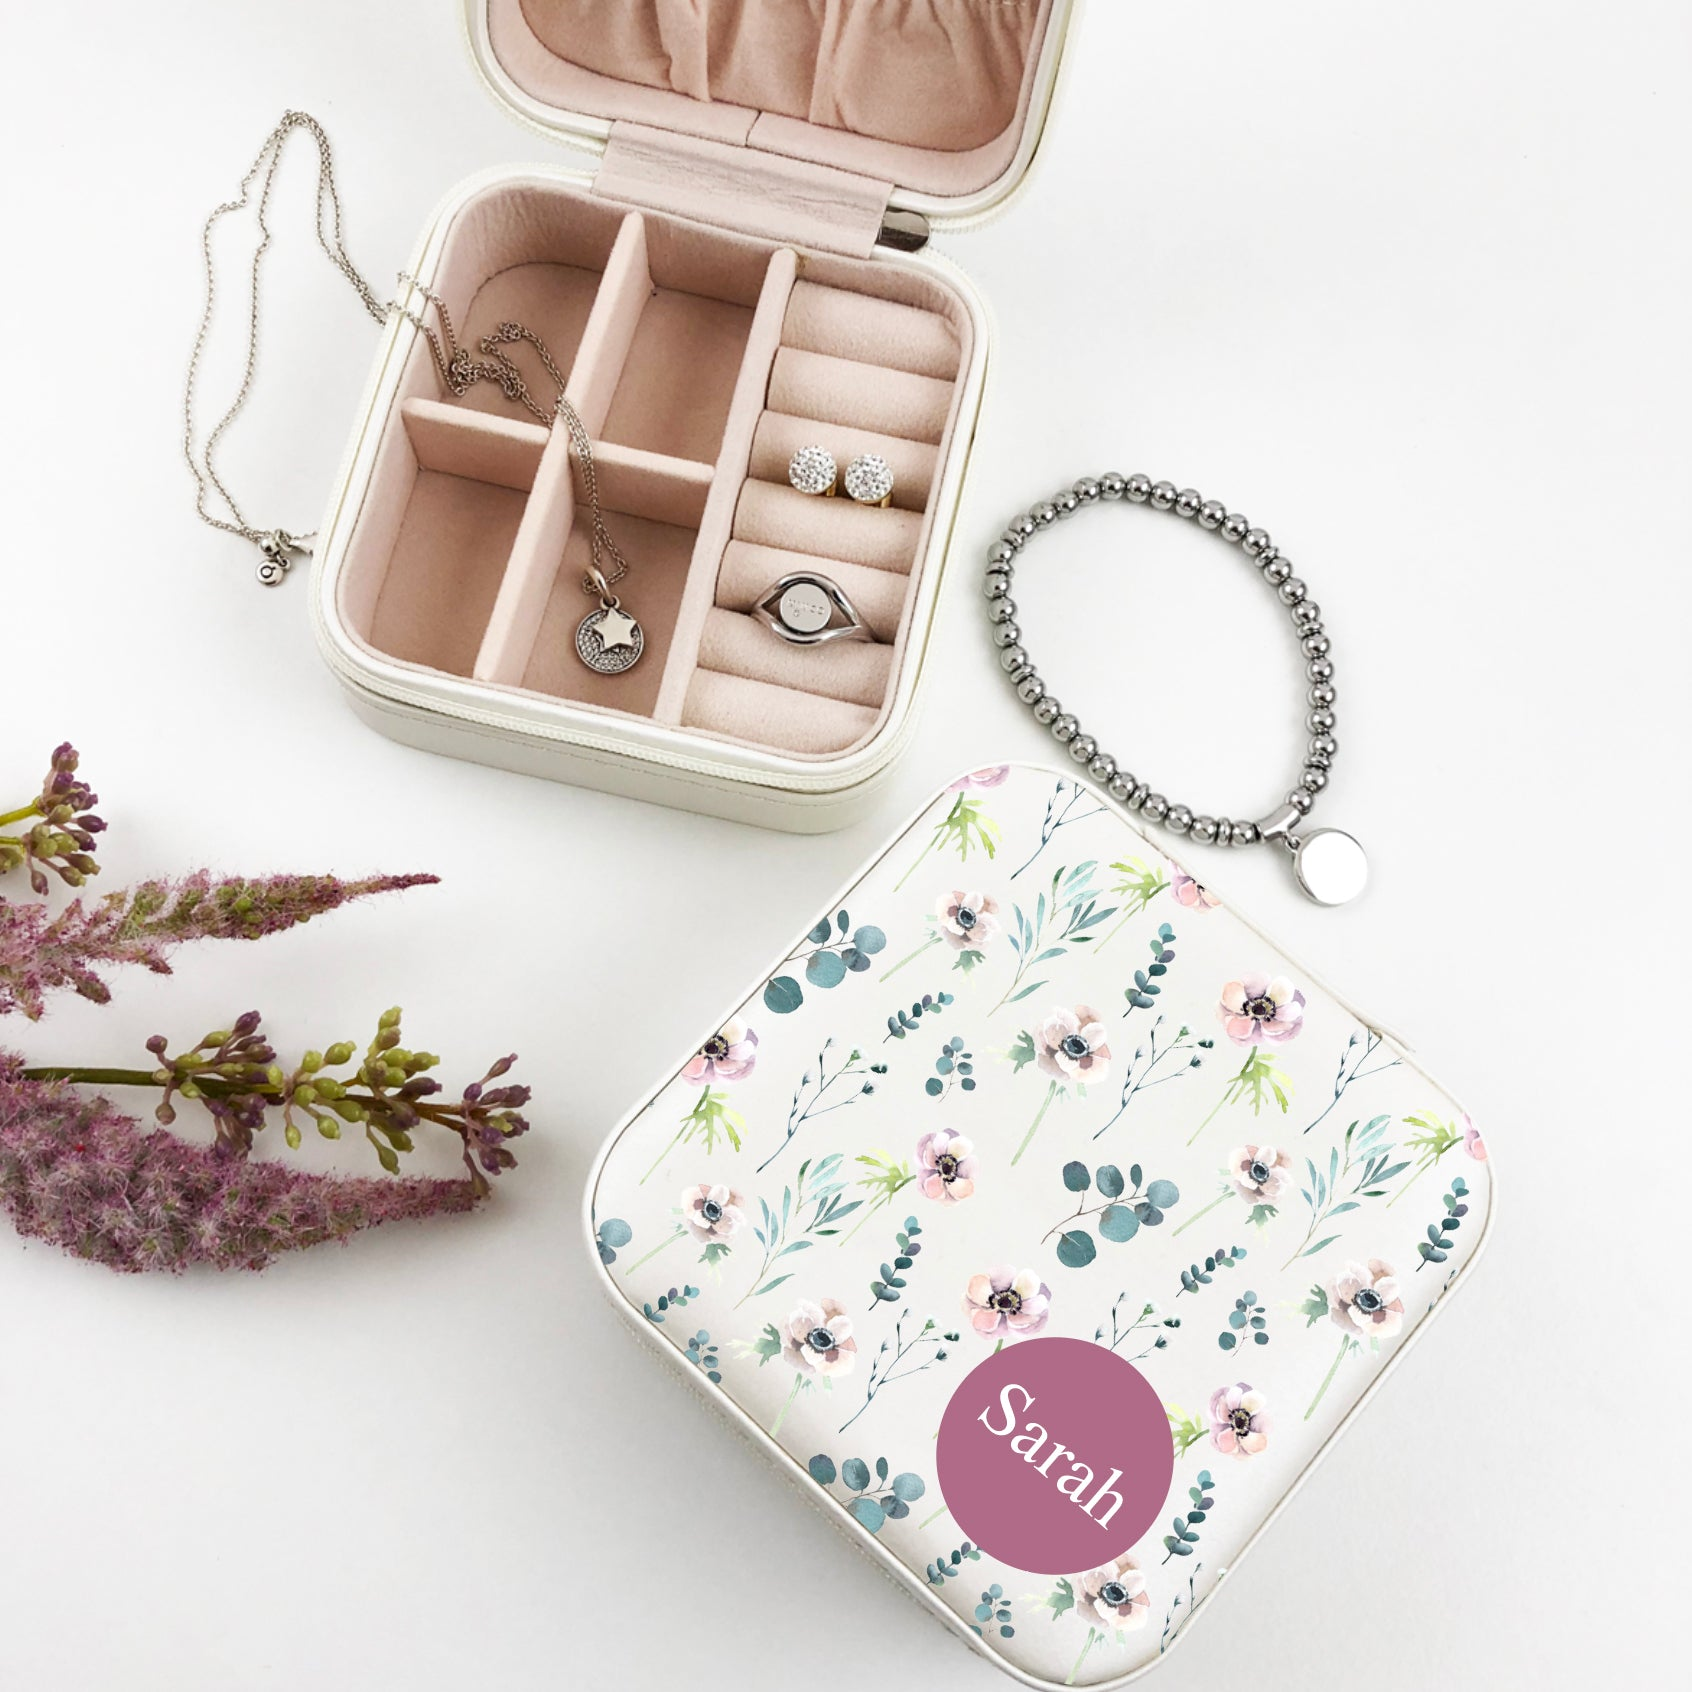 Floral Pattern Jewellery Case - (Limited Quantity)